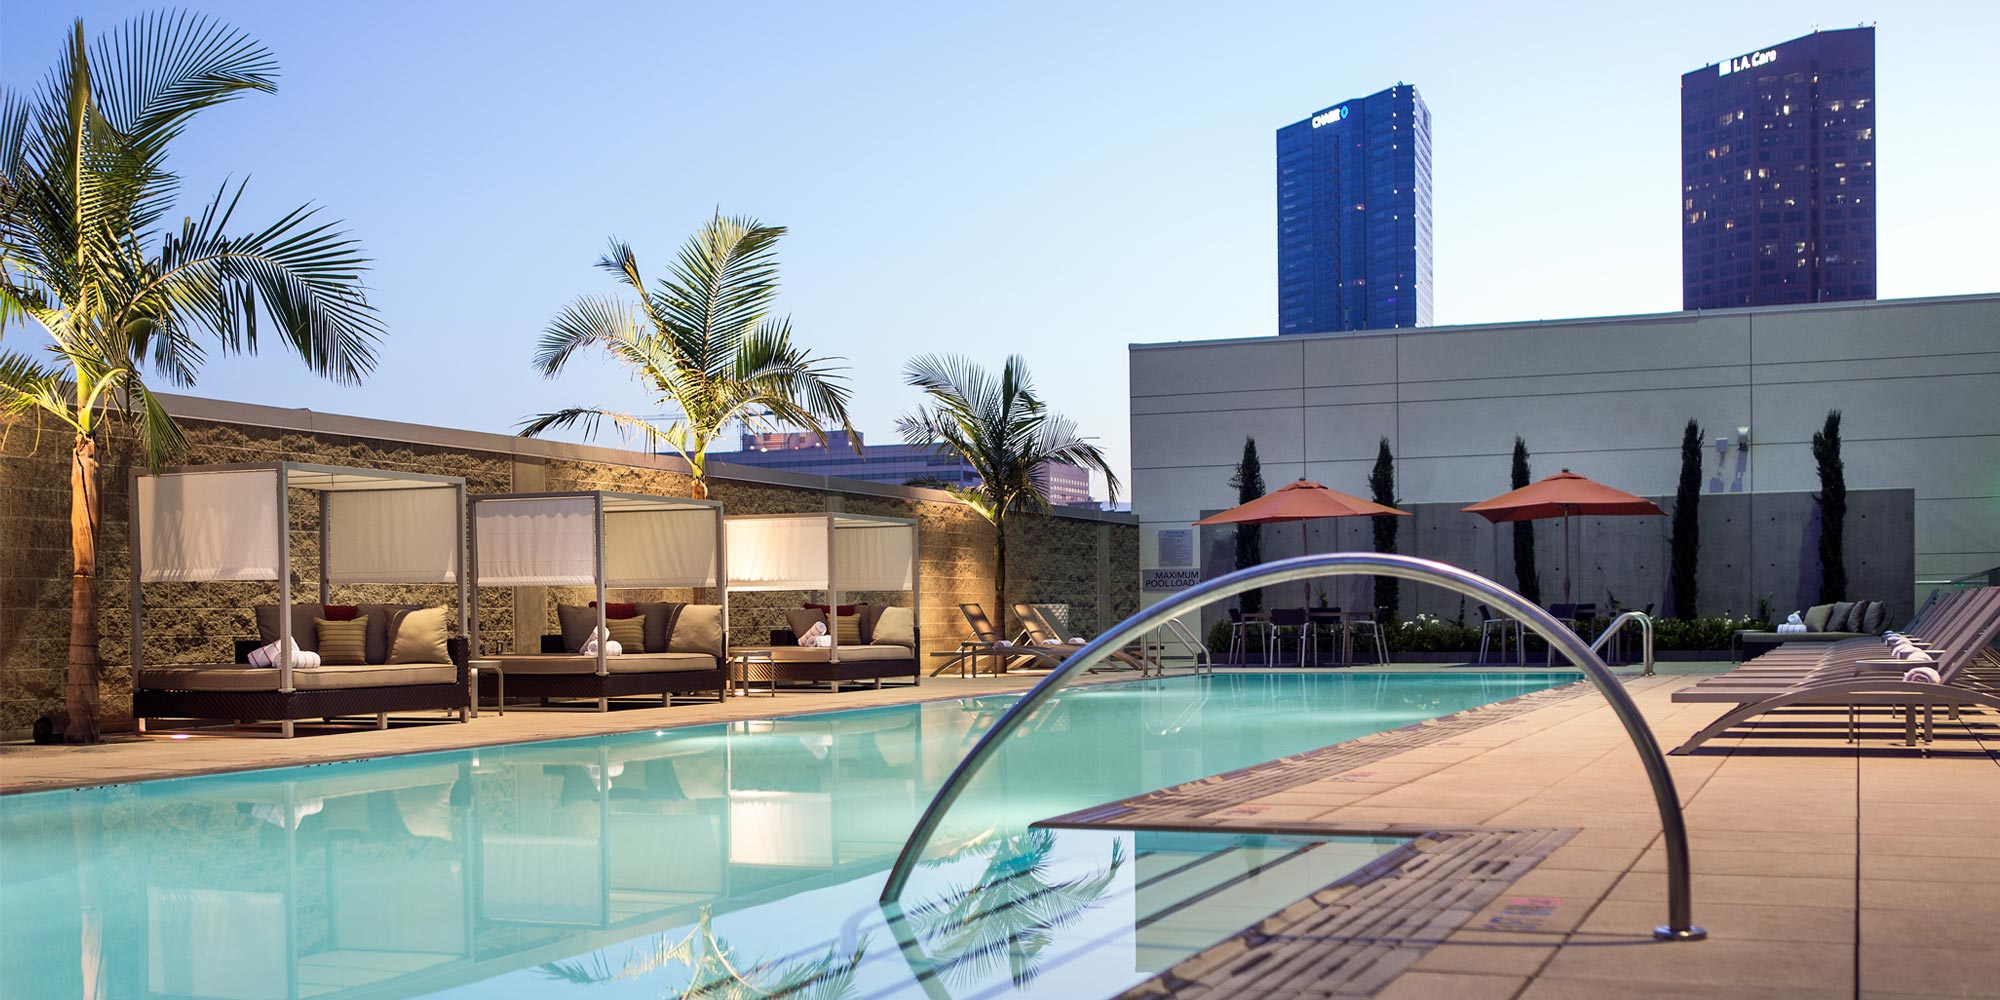 The pool and courtyard at LA Marriott at L.A. Live